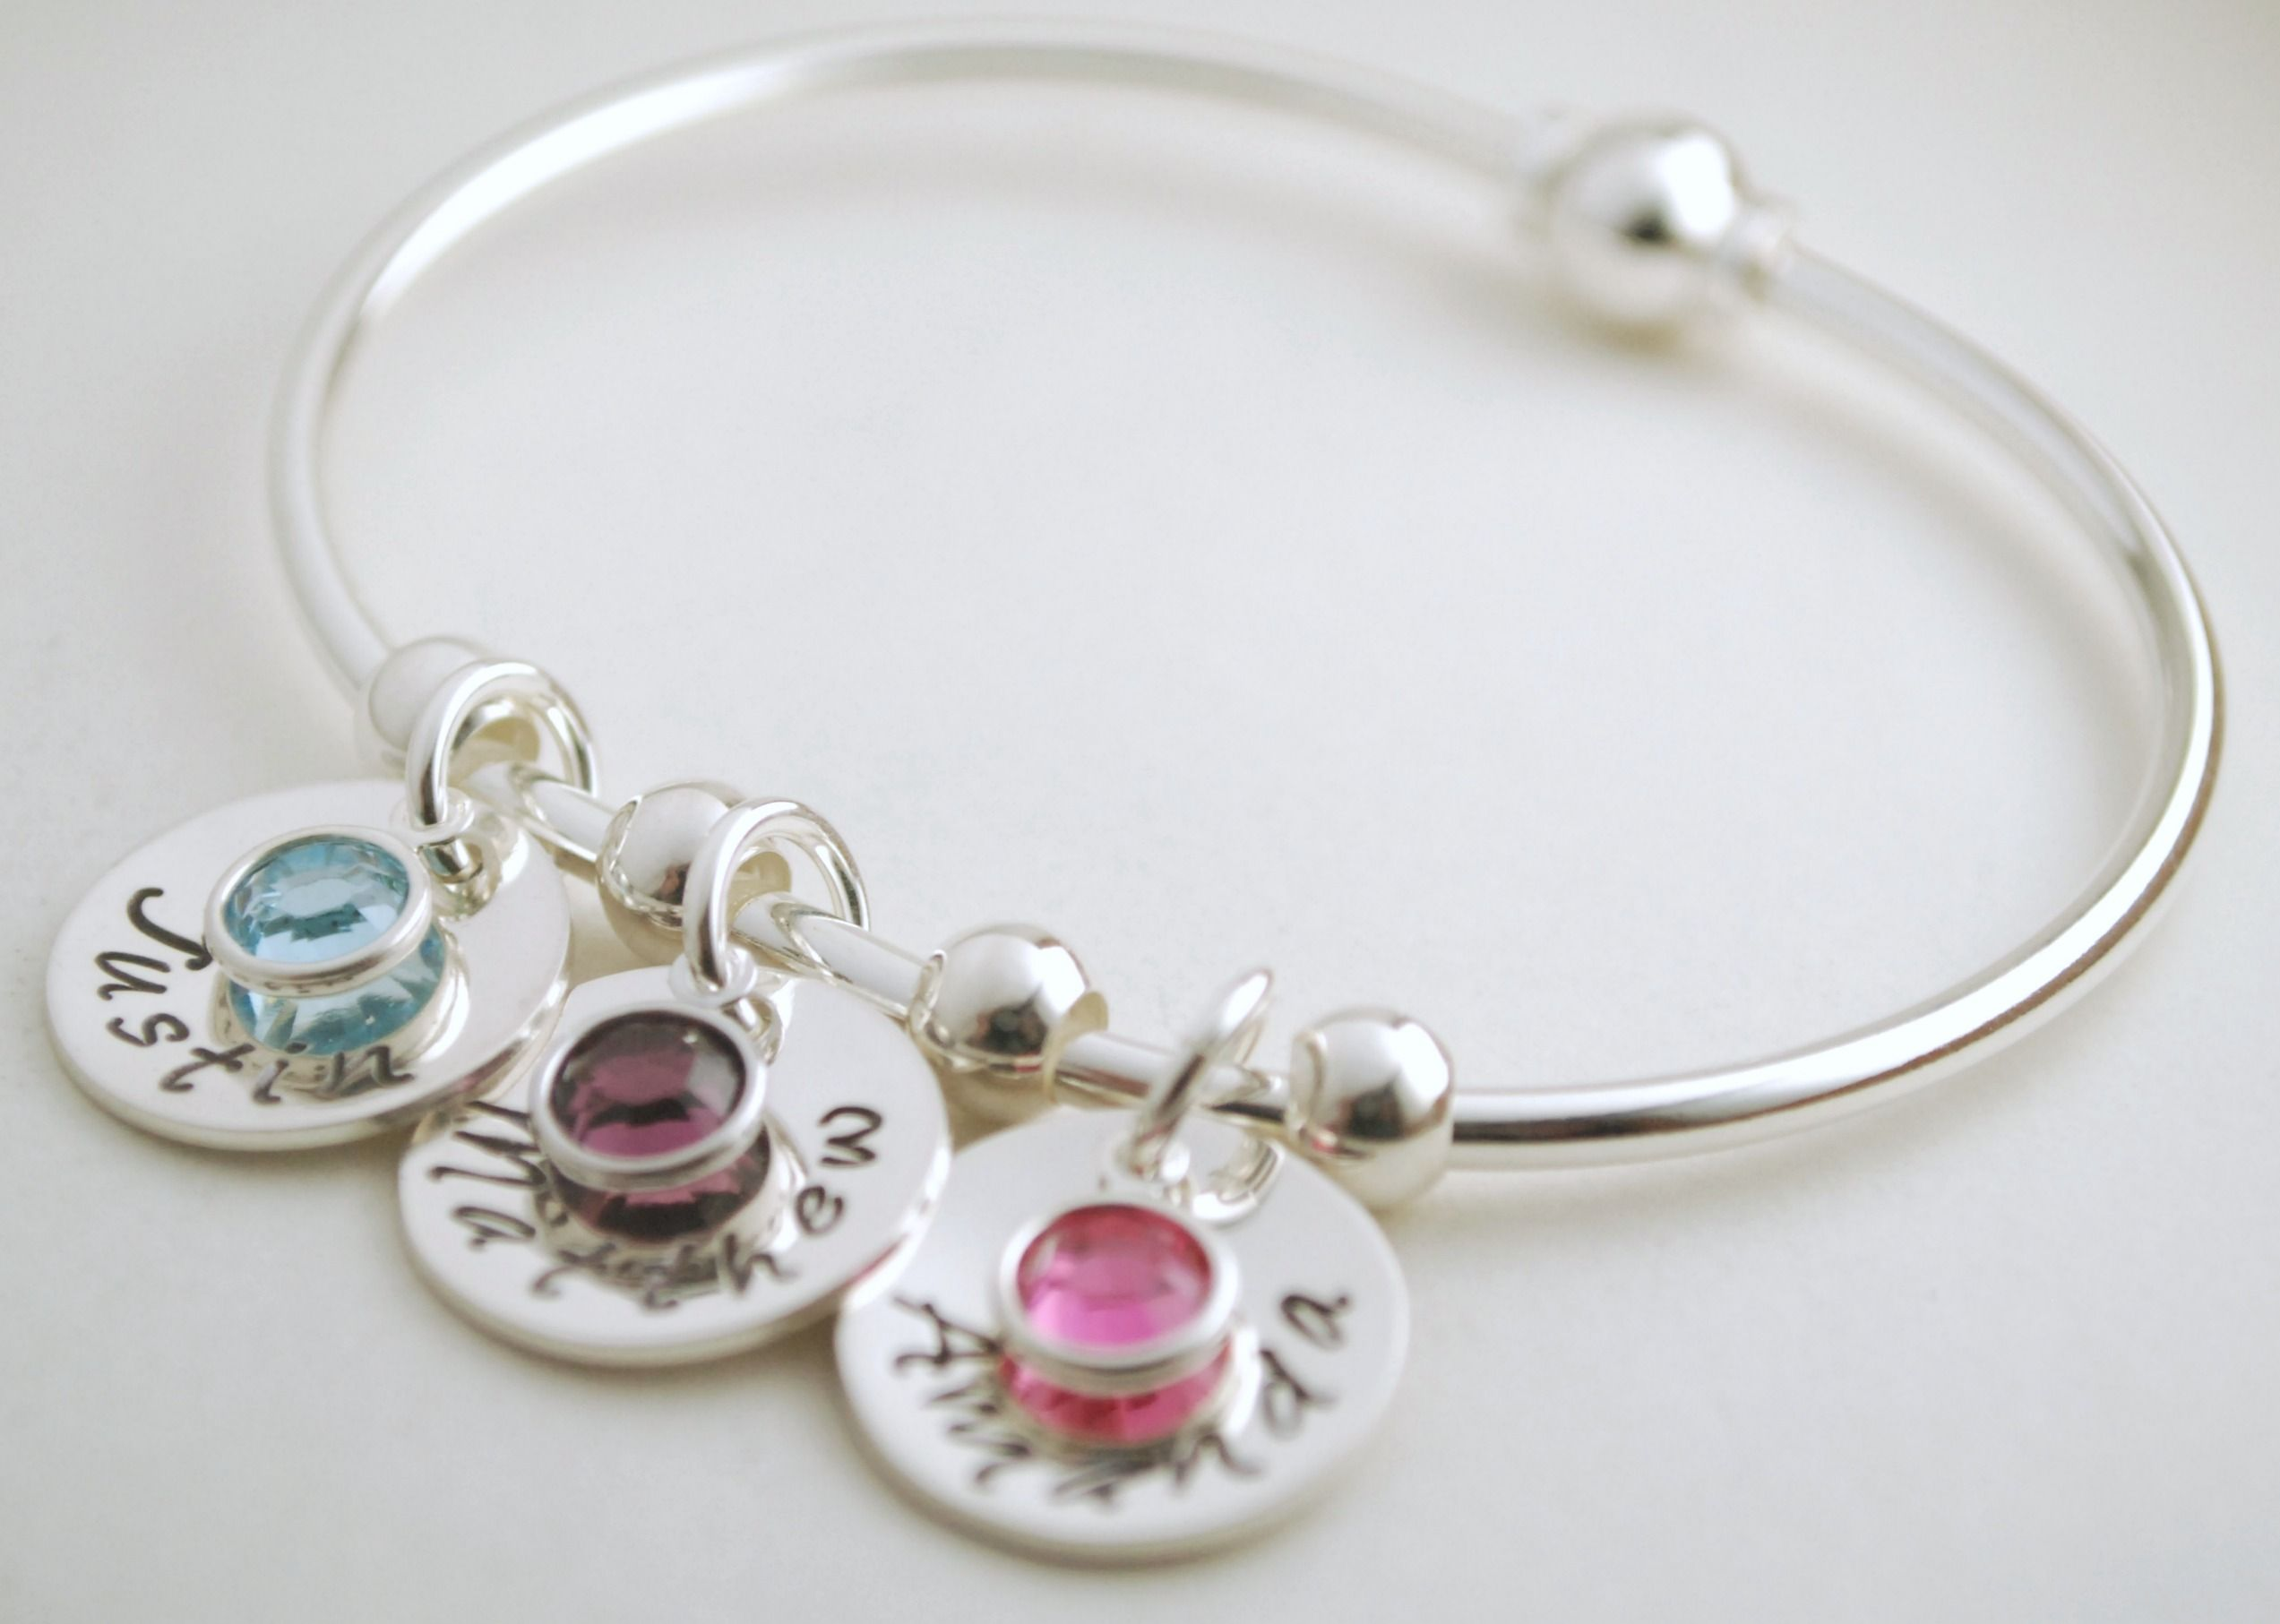 Buy a Hand Made Personalized Bangle Bracelet With Name Charms And